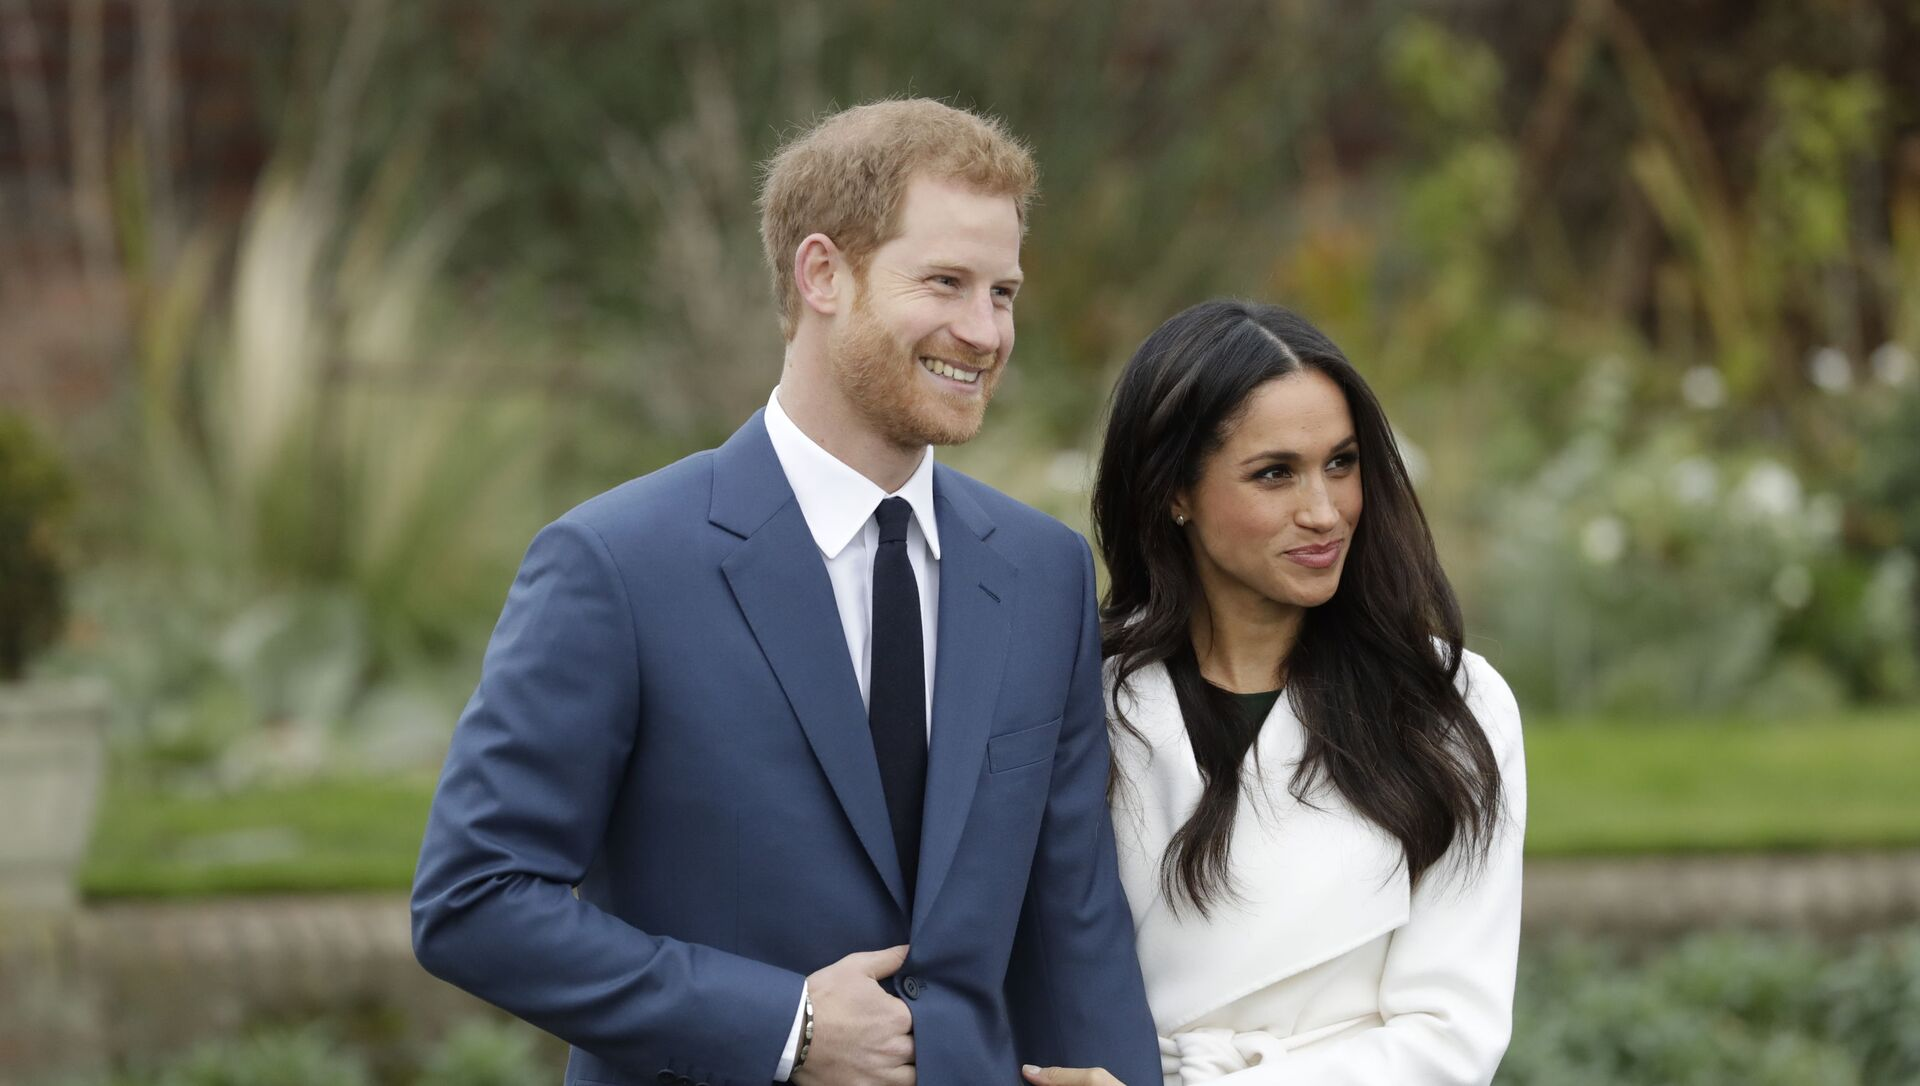 Britain's Prince Harry and his fiancee Meghan Markle pose for photographers during a photocall in the grounds of Kensington Palace in London, Monday Nov. 27, 2017 - Sputnik International, 1920, 25.07.2021